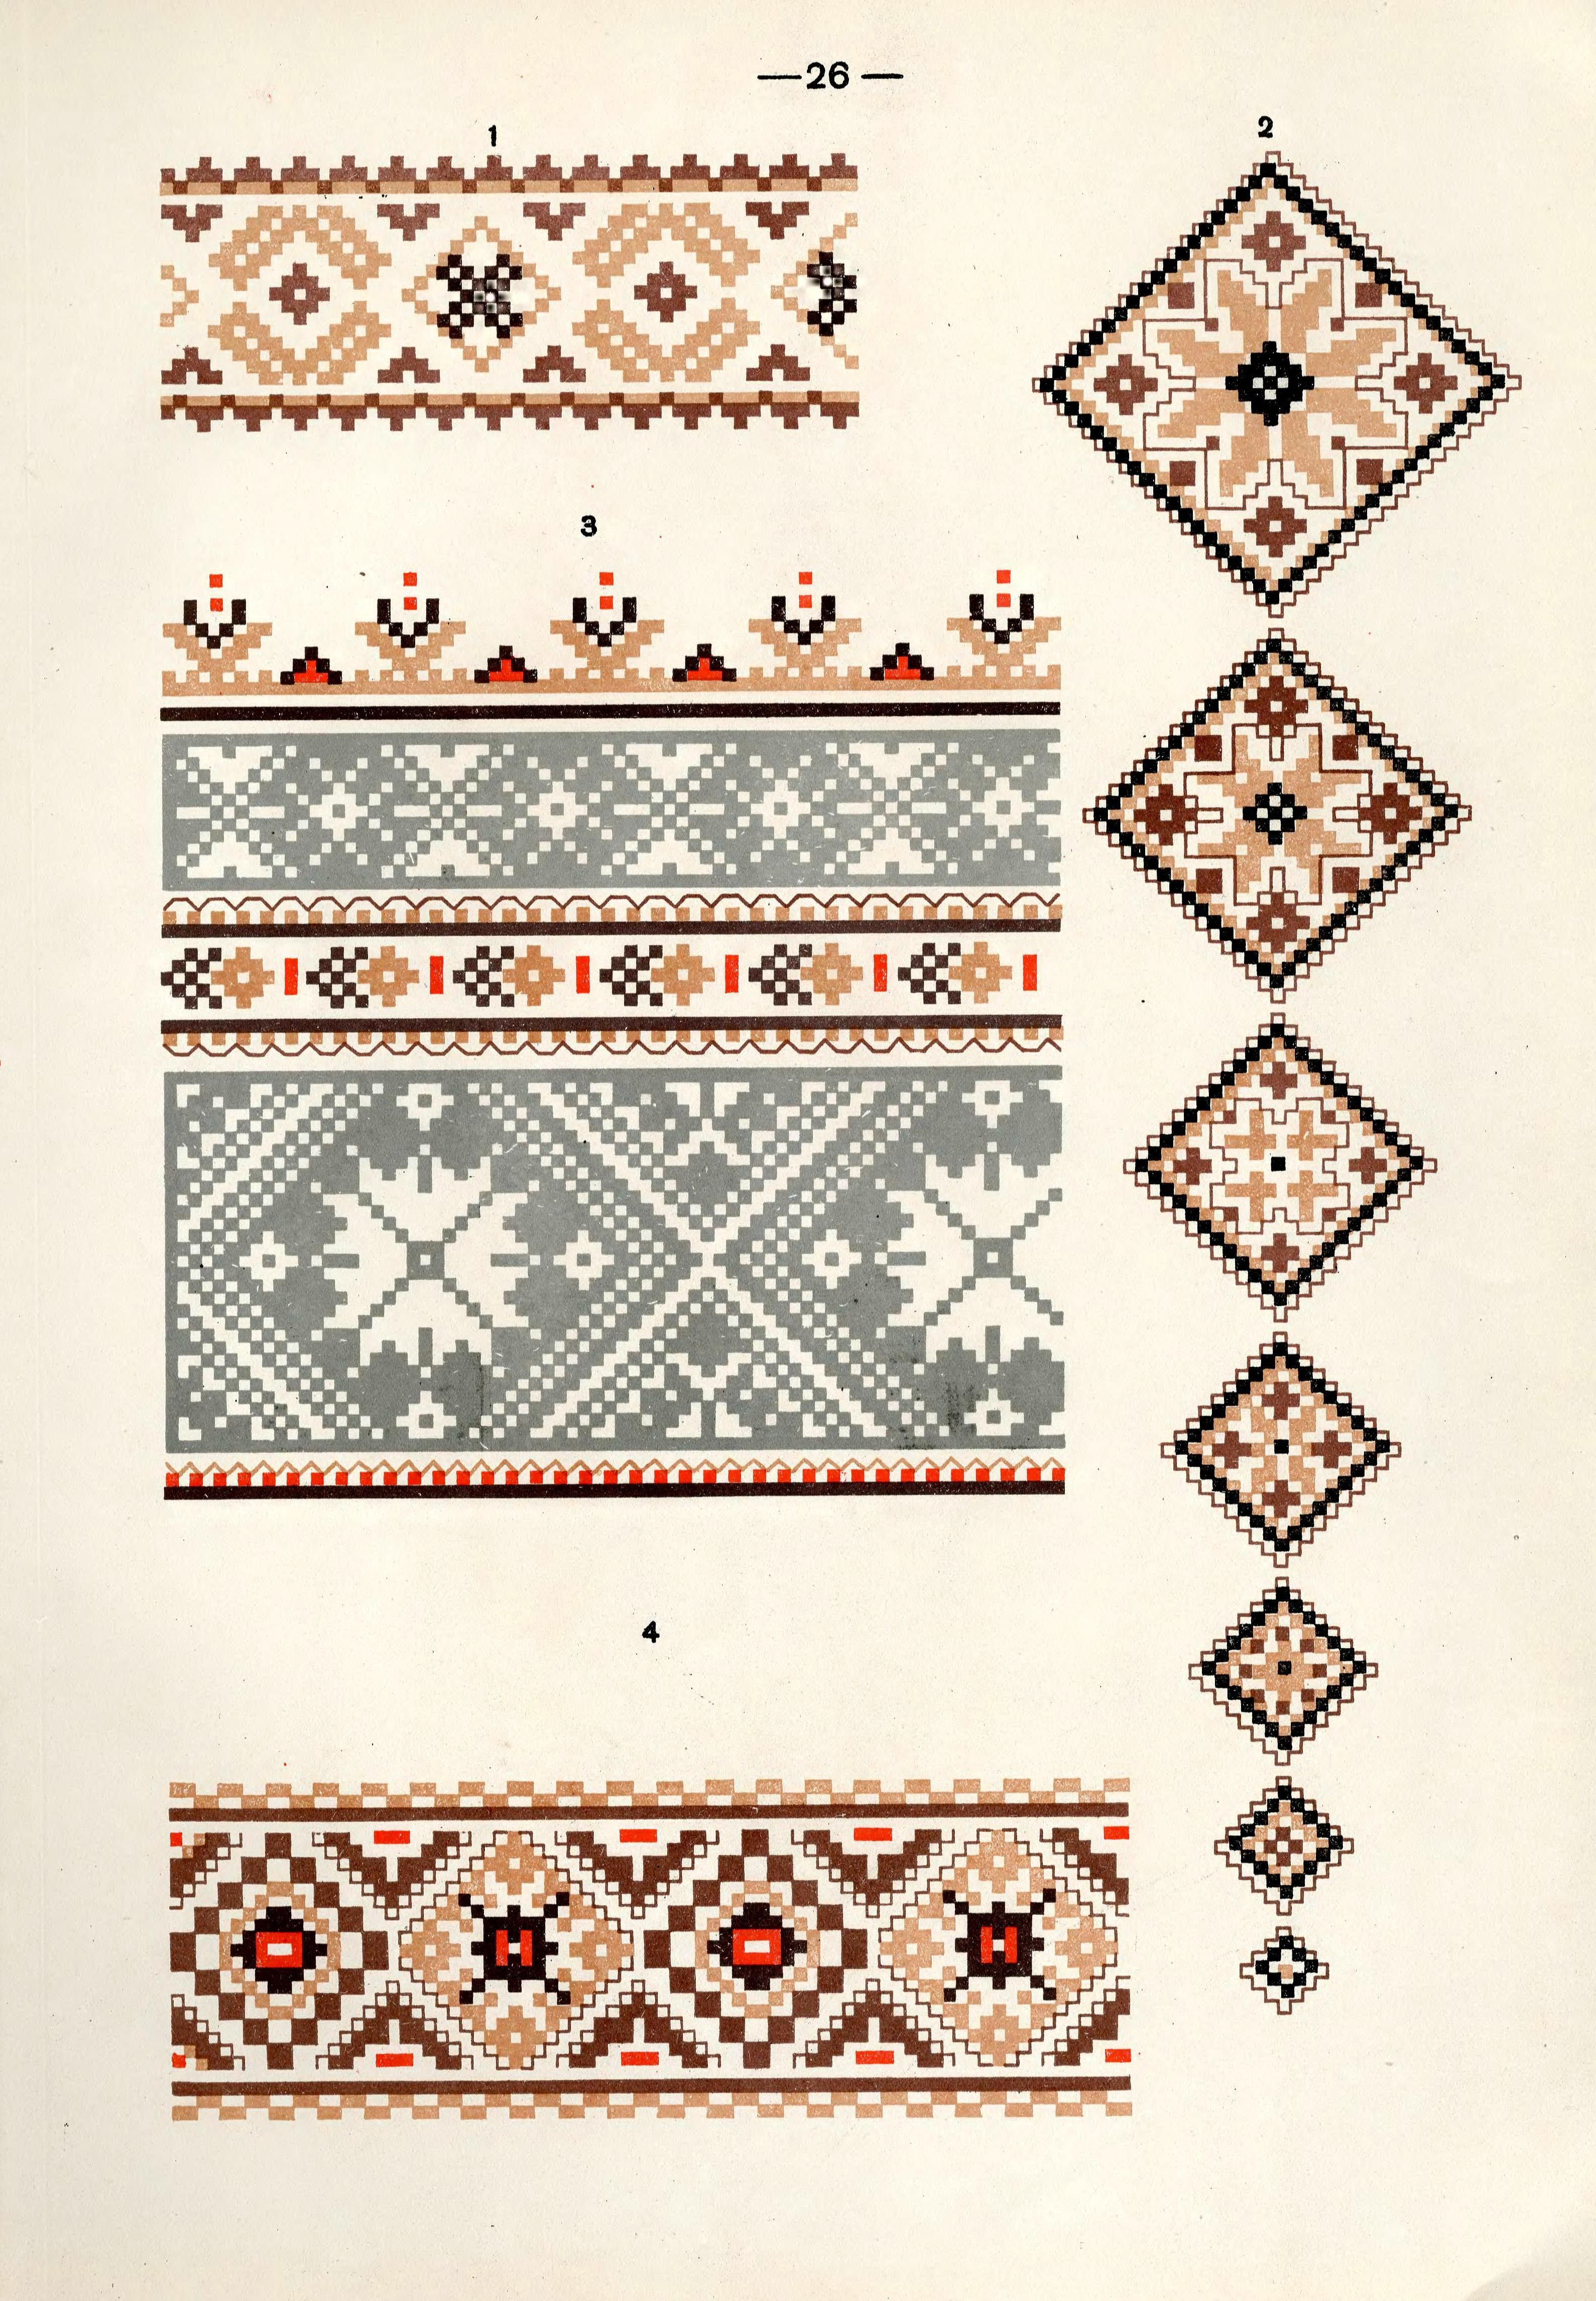 Free Clip Art and Digital Collage Sheet - Belarusian ethnic ...